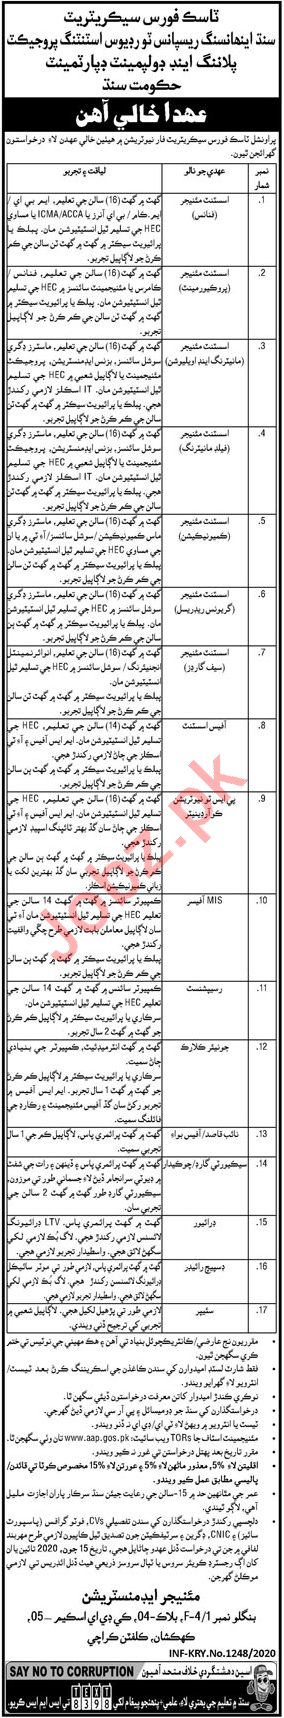 Planning & Development Department Sindh Jobs 2020